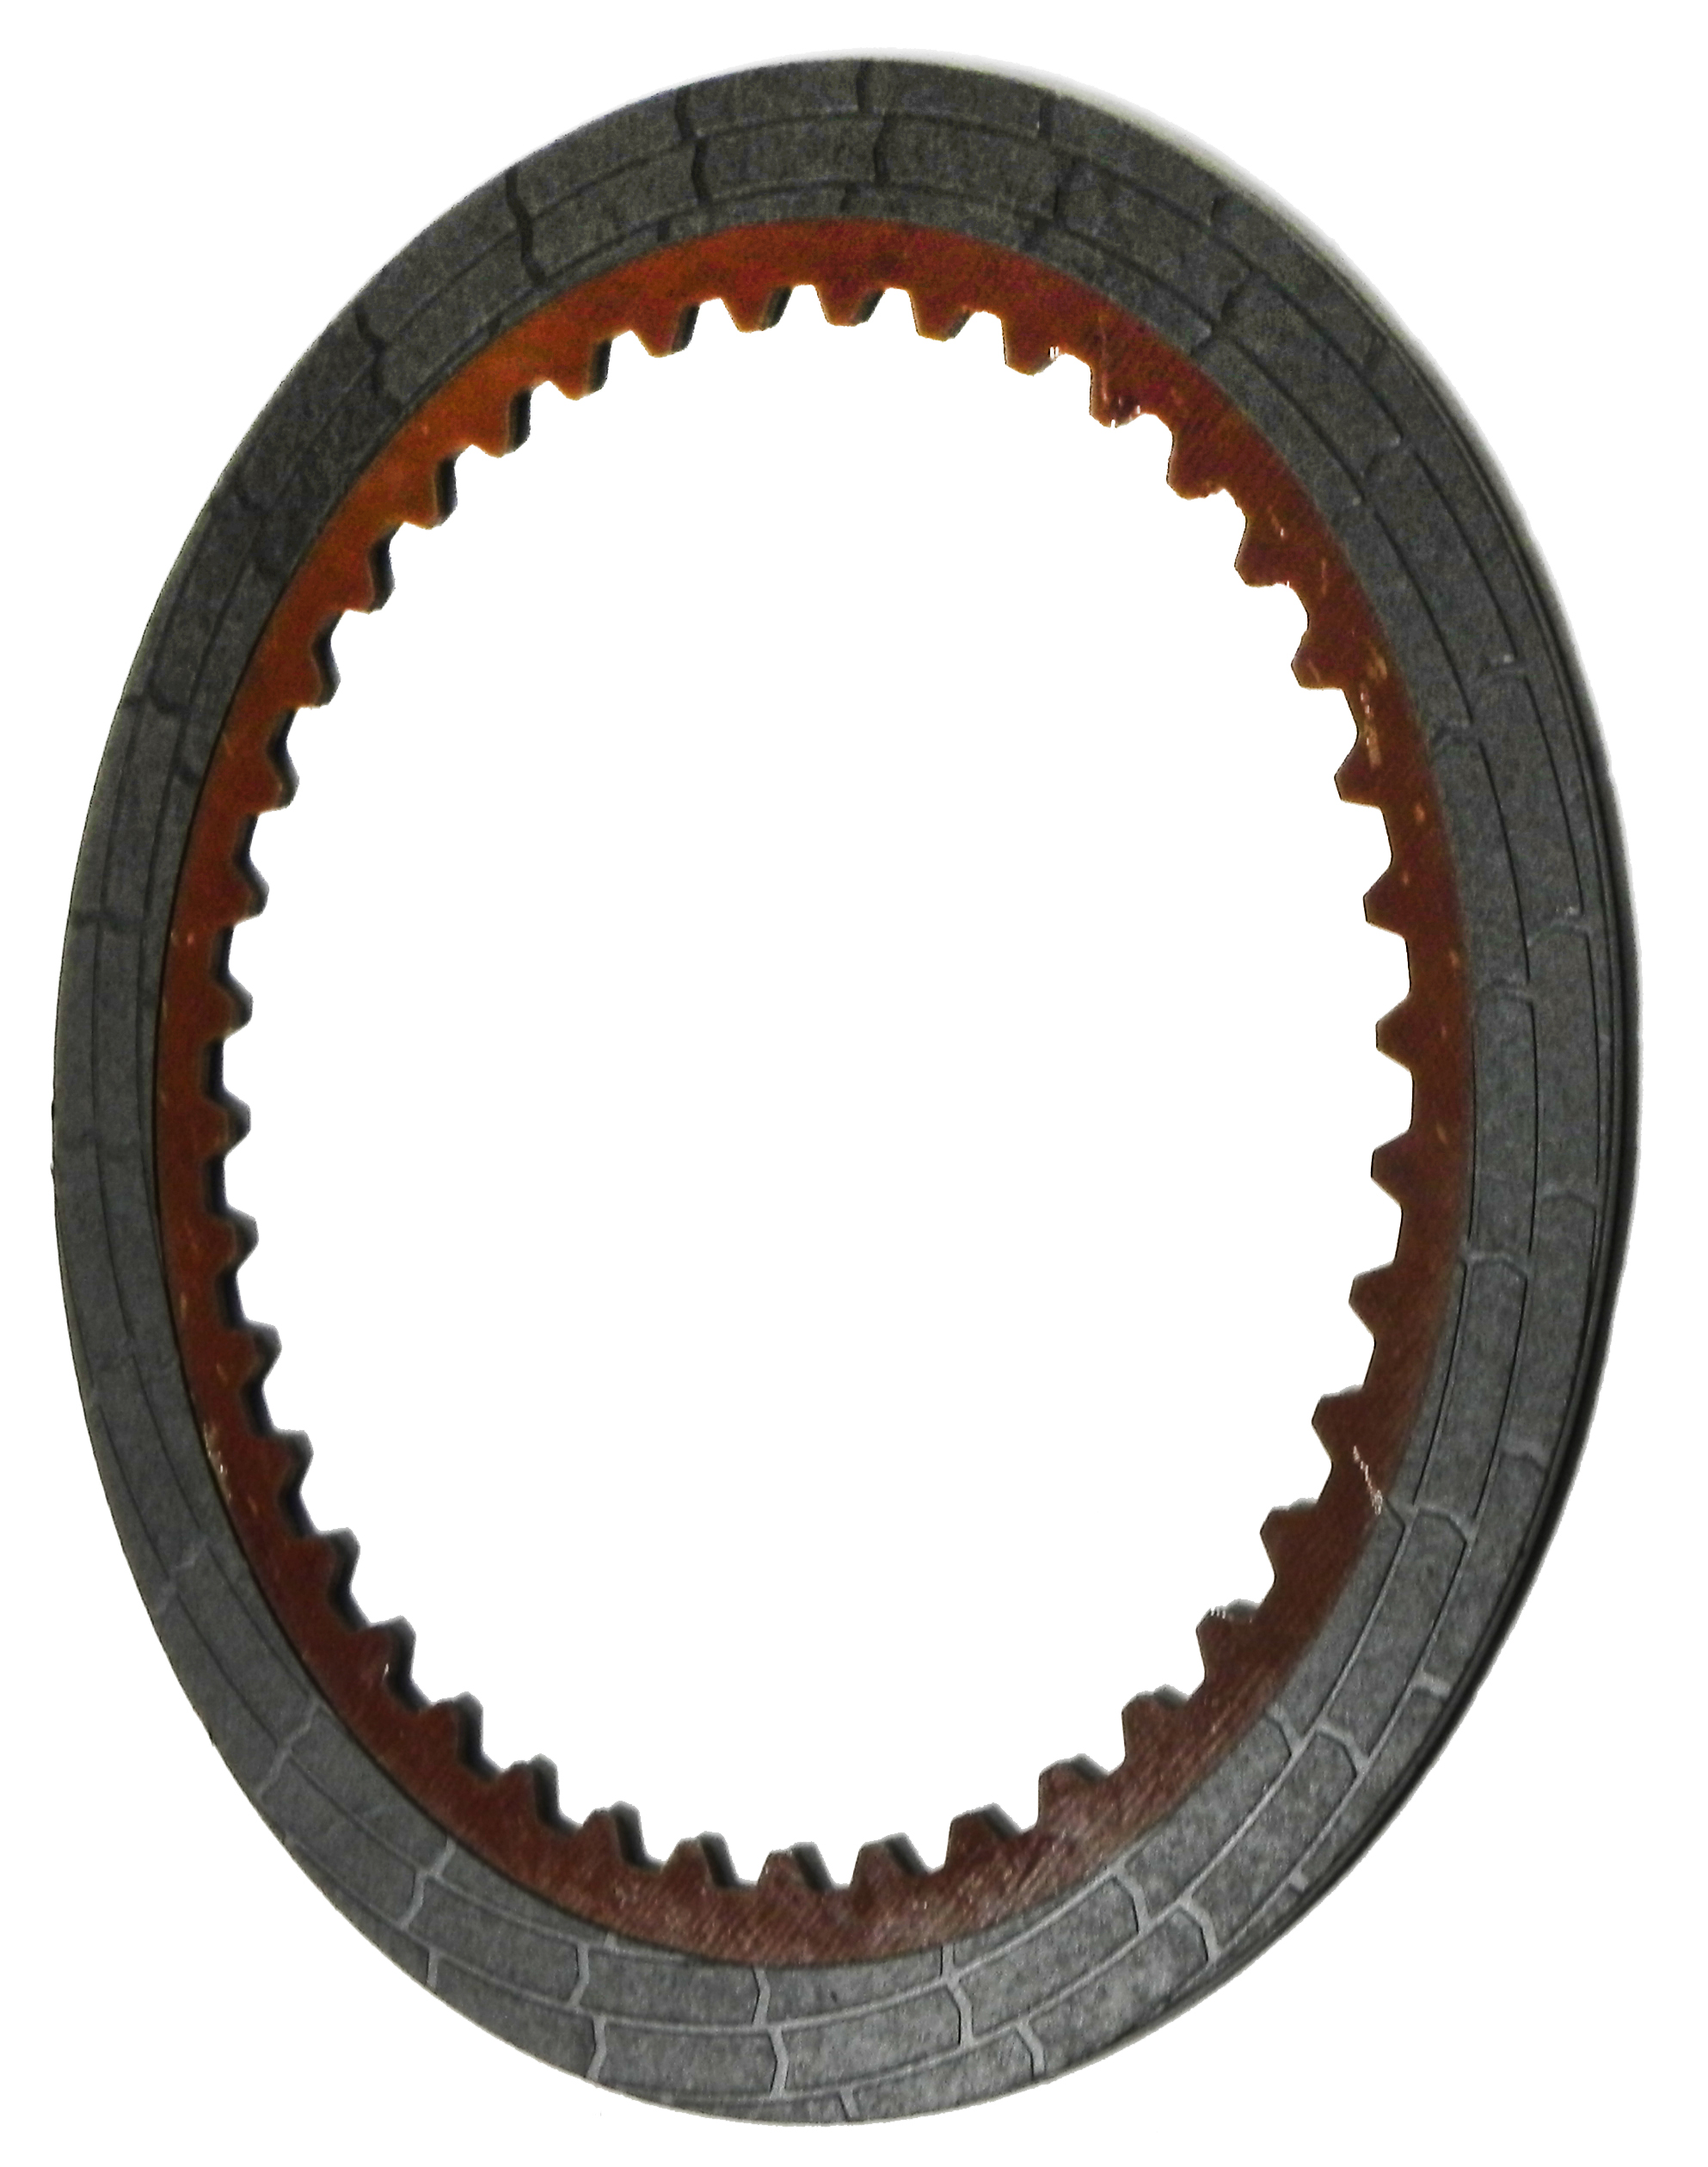 RH576480 | 2001-ON Friction Clutch Plate (HT) Hybrid Technology Overdrive, Direct Proprietary High Energy (HT)